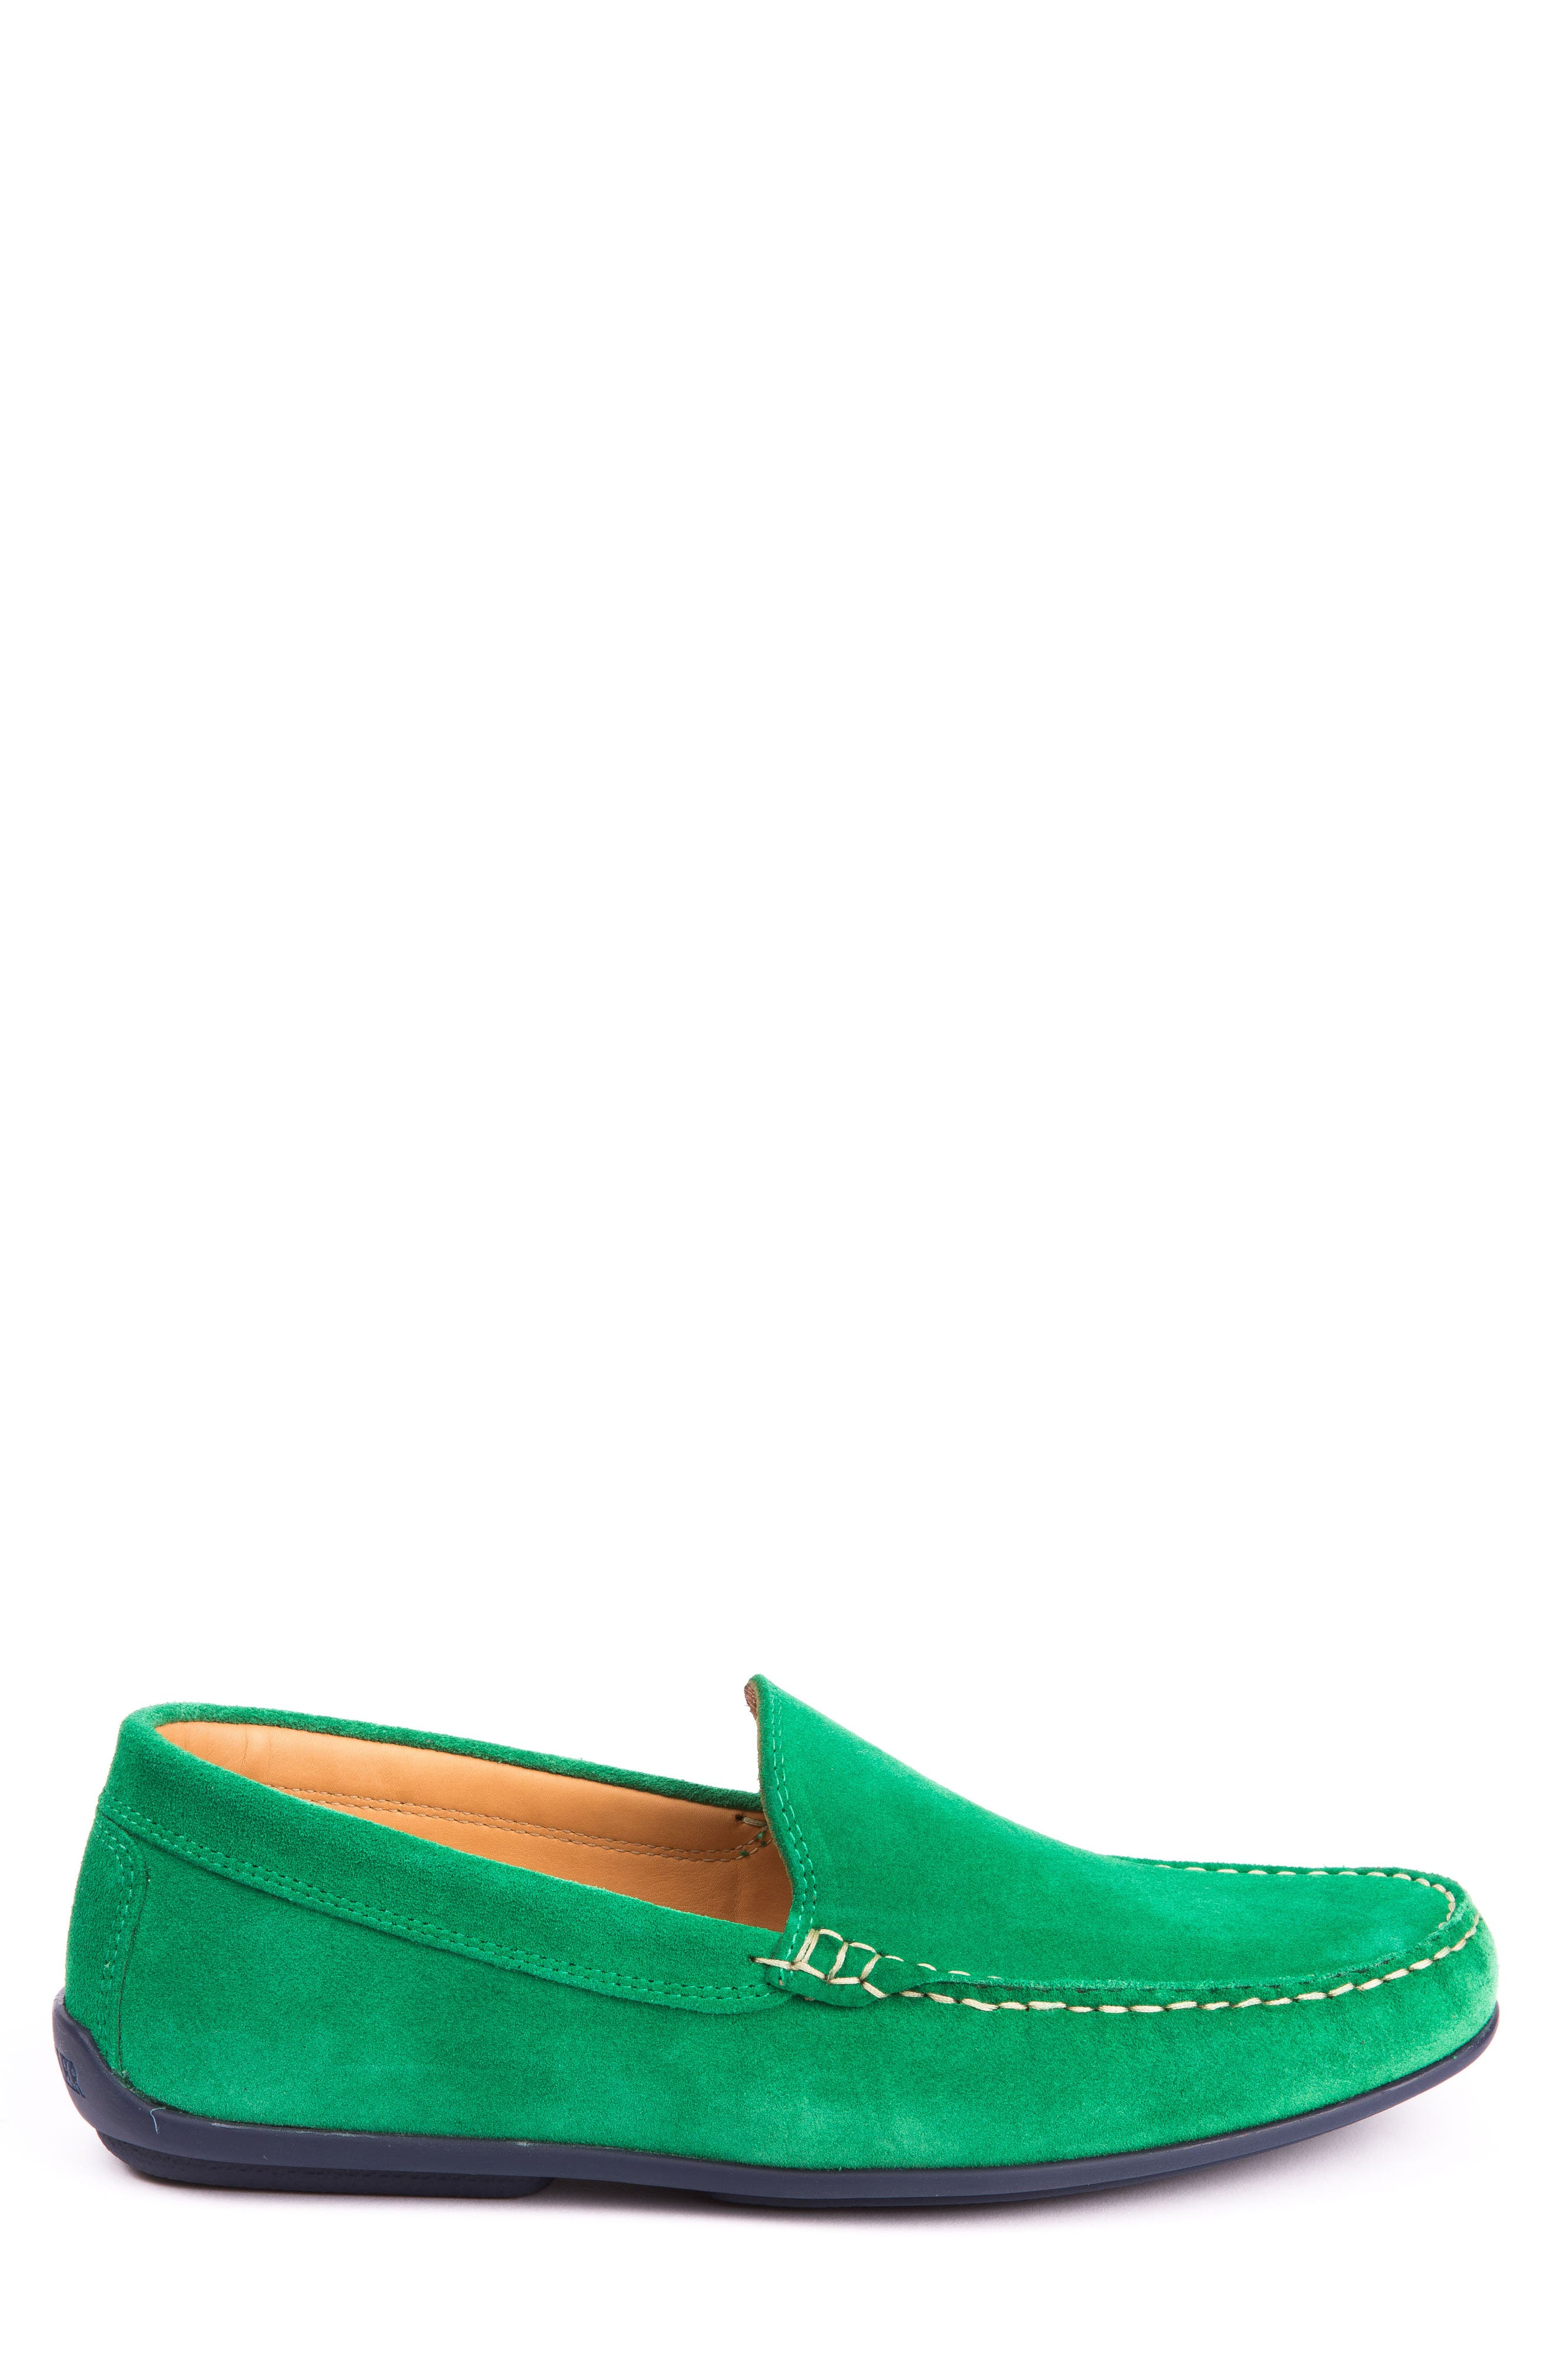 Fairways Driving Shoe,                             Alternate thumbnail 3, color,                             Green Suede